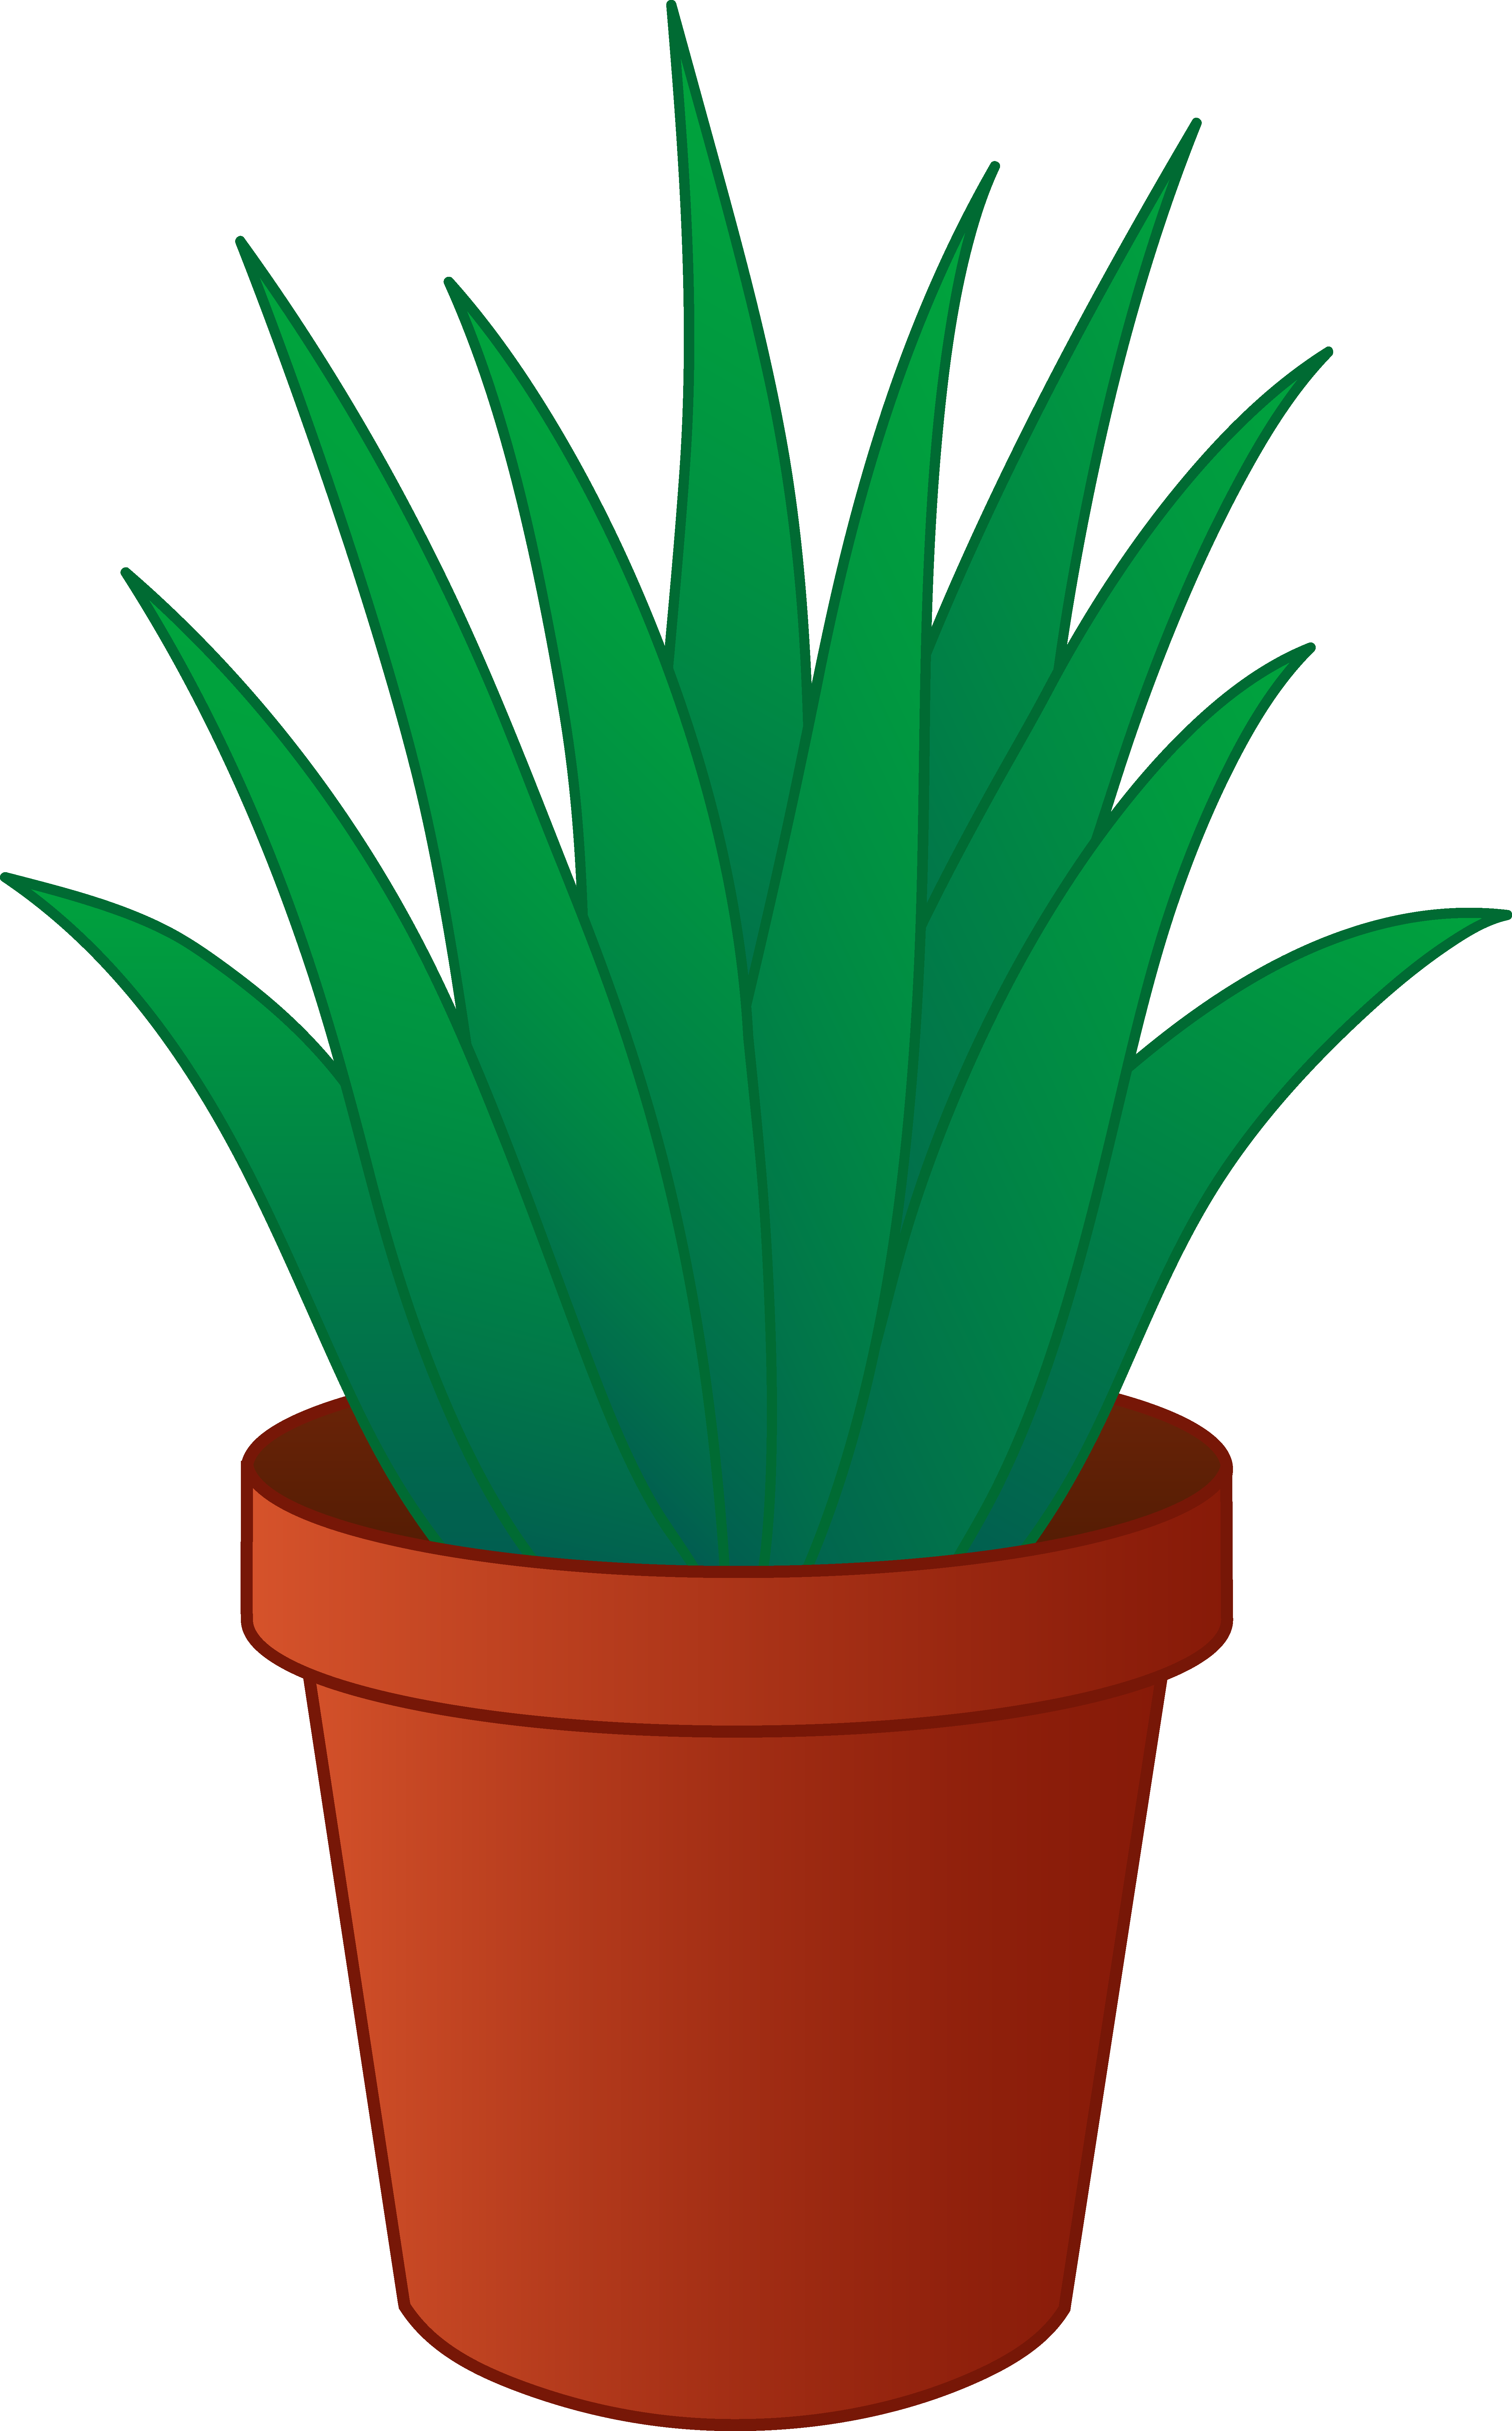 ... Plant Images Free | Free Download Clip Art | Free Clip Art | on .